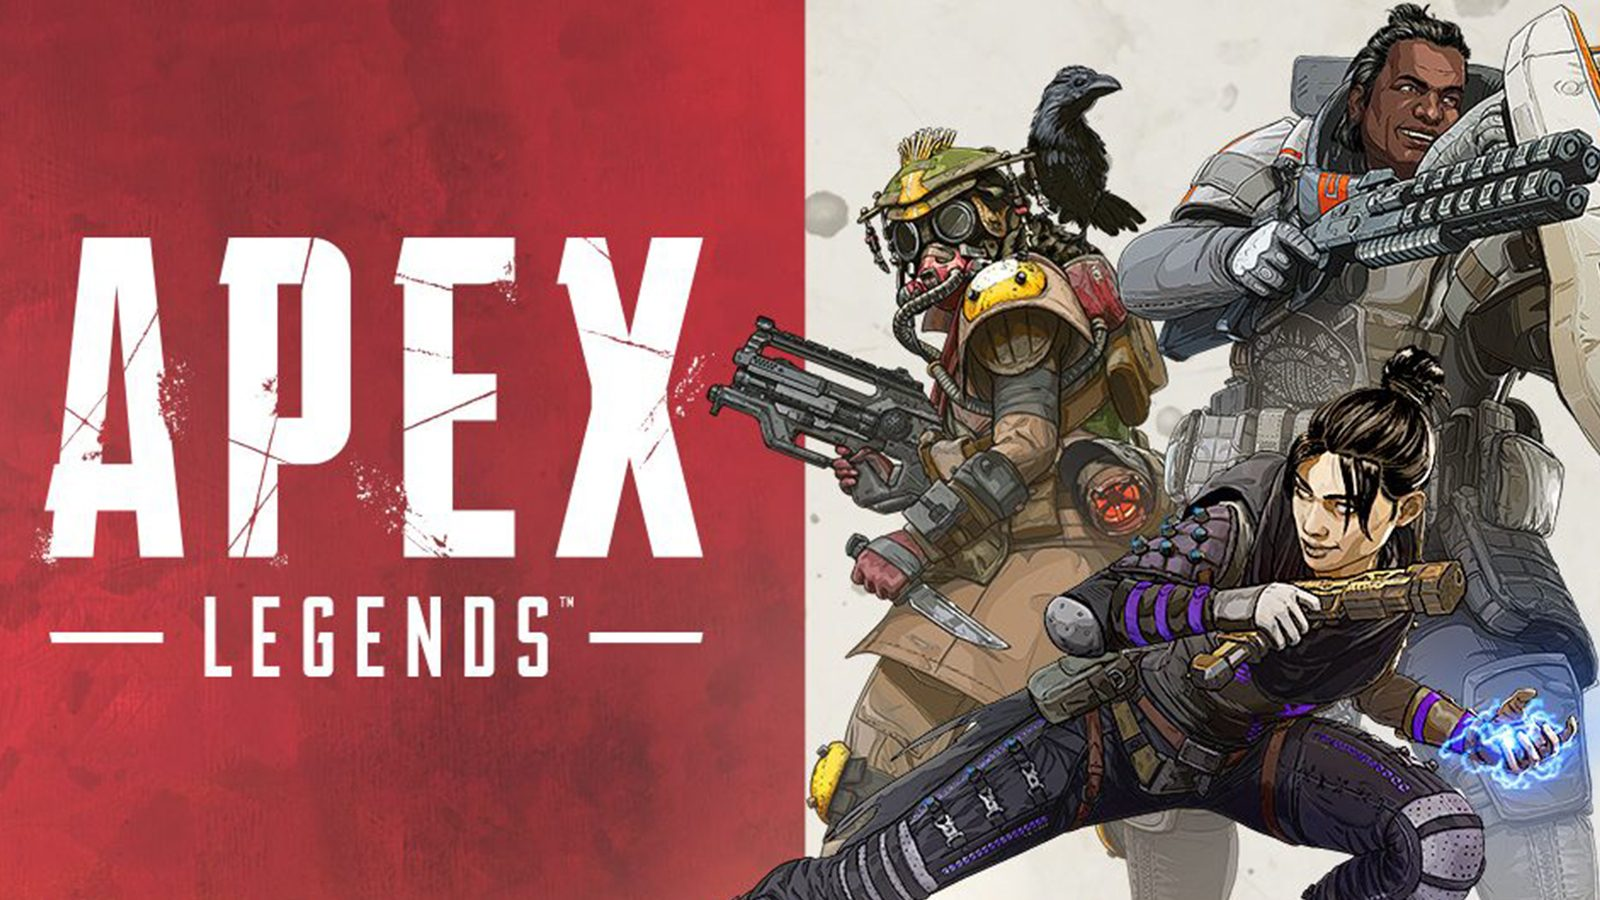 apex legends ot 30 urovnya [origin] + otvet 69 rur